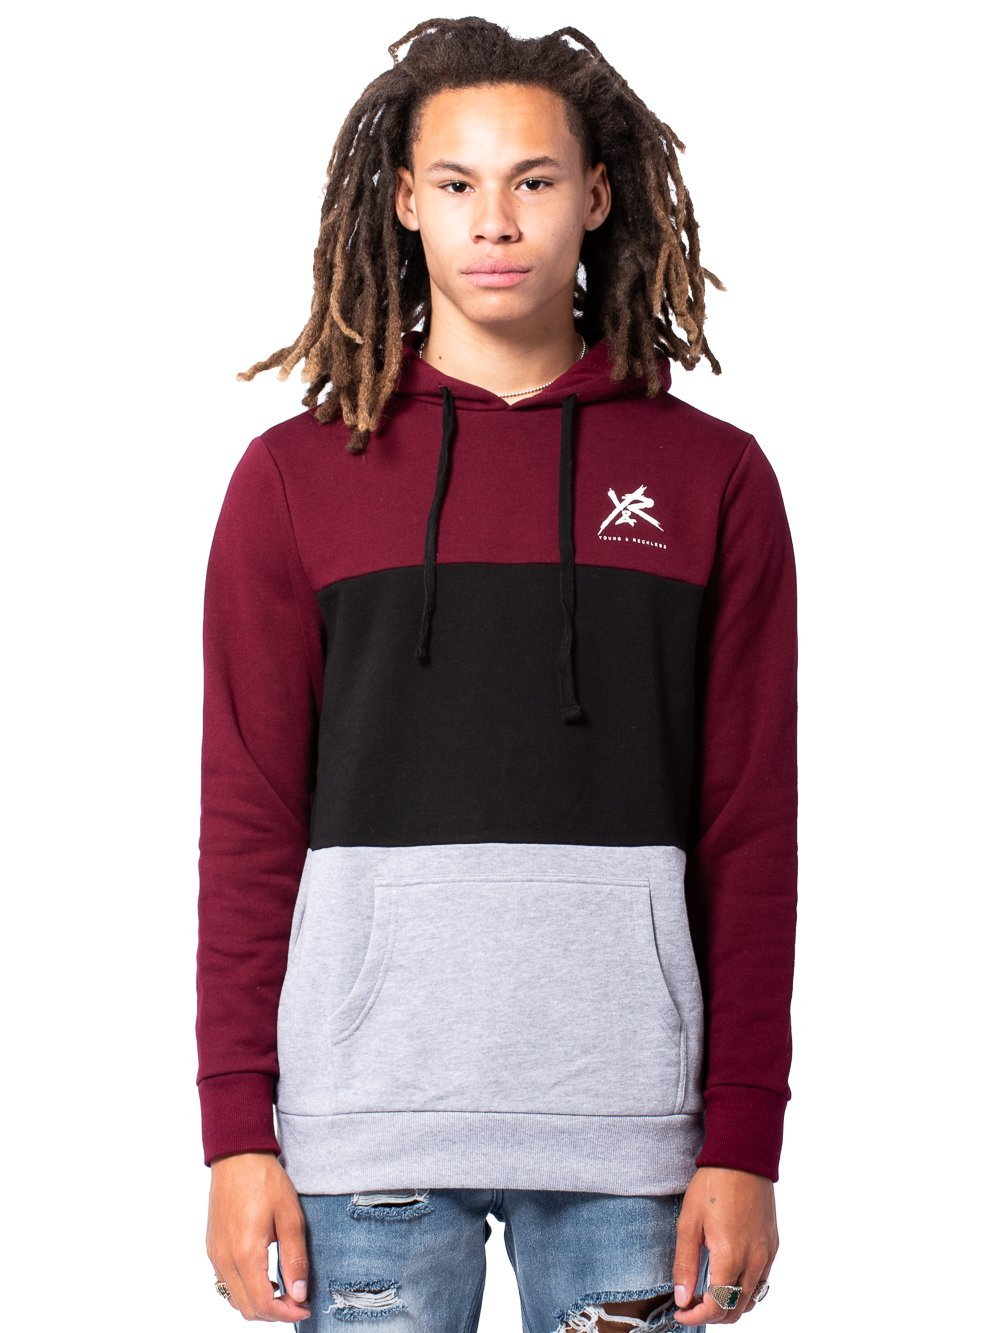 Young and Reckless Mens - Tops - Hoodies Compound Hoodie - Burgundy/Grey